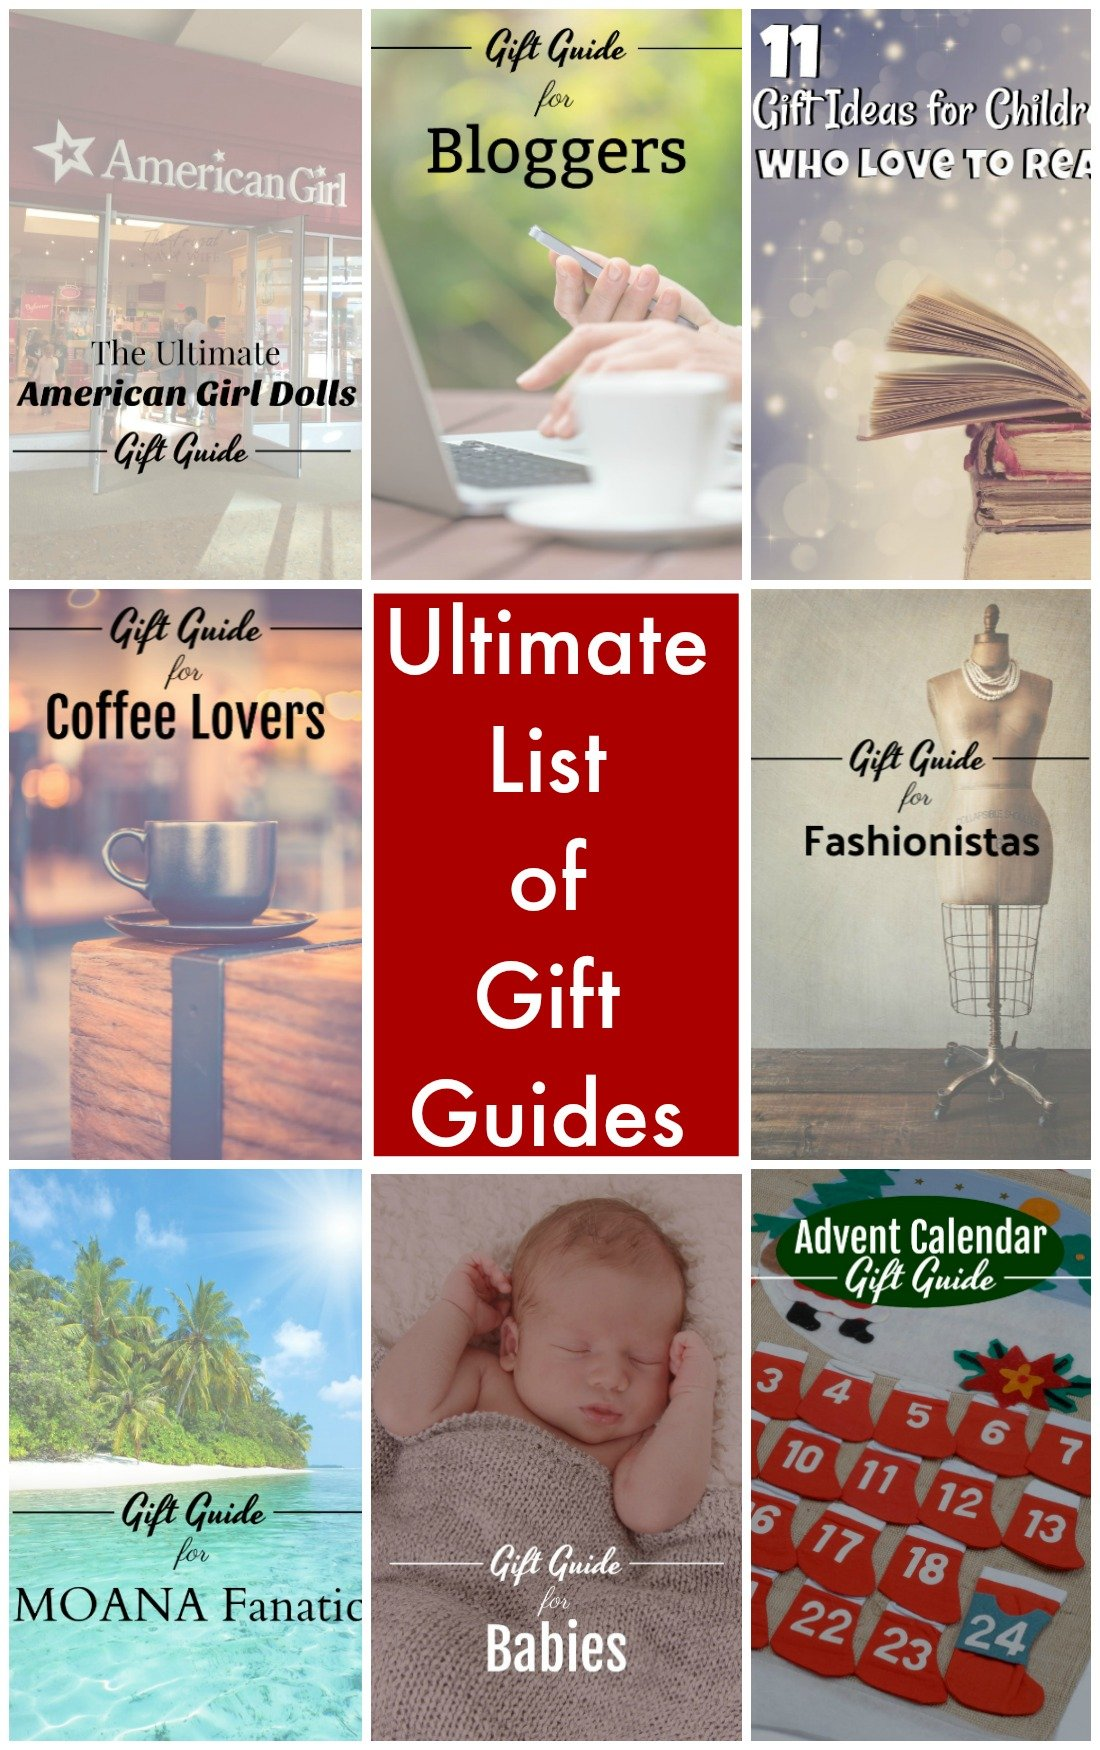 The Ultimate List of the Best Holiday Gift Guides. Something for everyone on your list. Stocking stuffer ideas, ideas for holidays, birthdays, and more. #holidaygiftguide #FrugalNavyWife #holidaygiftidea #holidaygiftideas #holidaygifts #holidaygiftsforkids #holidaygiftguideforkids #Holidaygiftguideideas